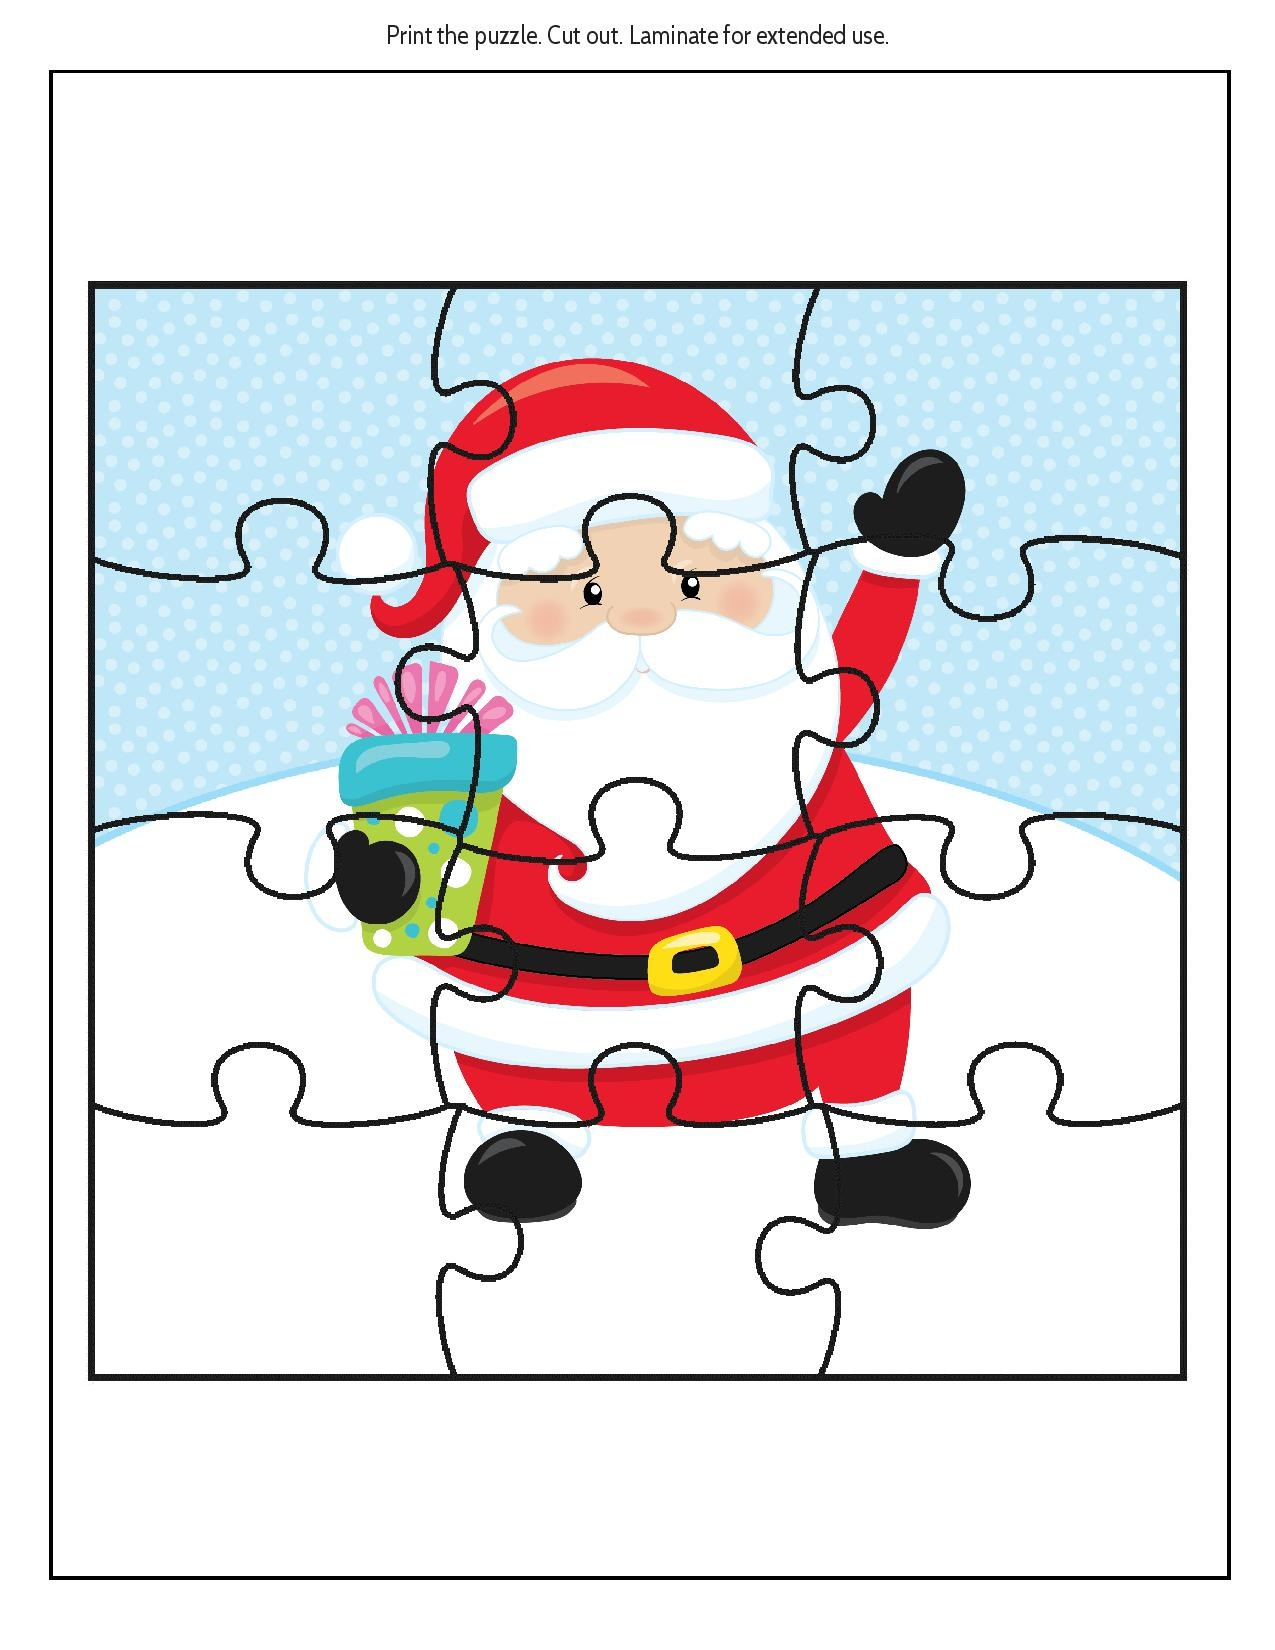 Free Educational Printable Christmas Puzzle Pack - Real And Quirky - Free Printable Christmas Puzzles